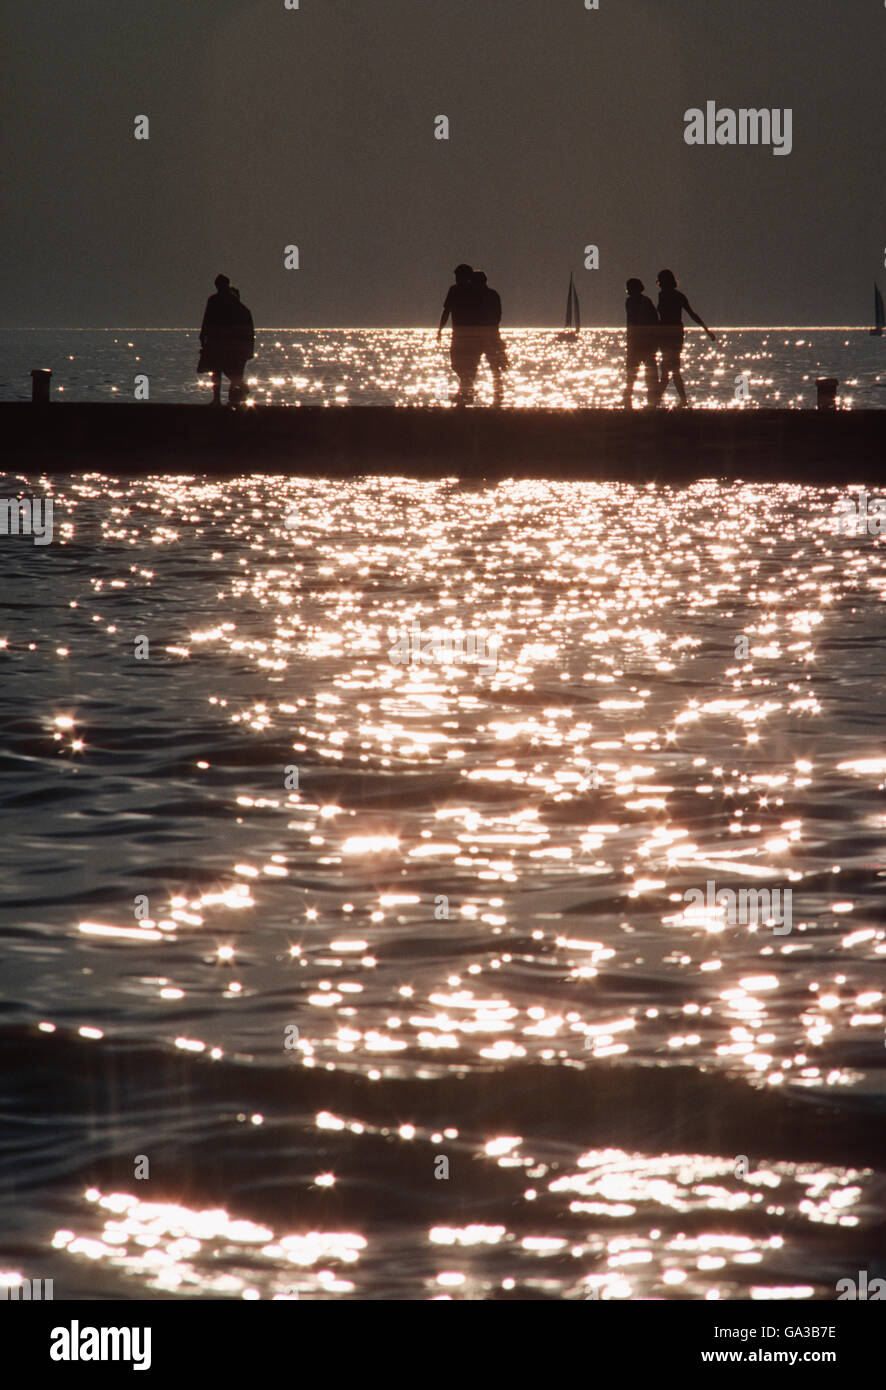 Vacationers silhouetted against reflections of setting sun on Lake Michigan; Michigan; USA - Stock Image